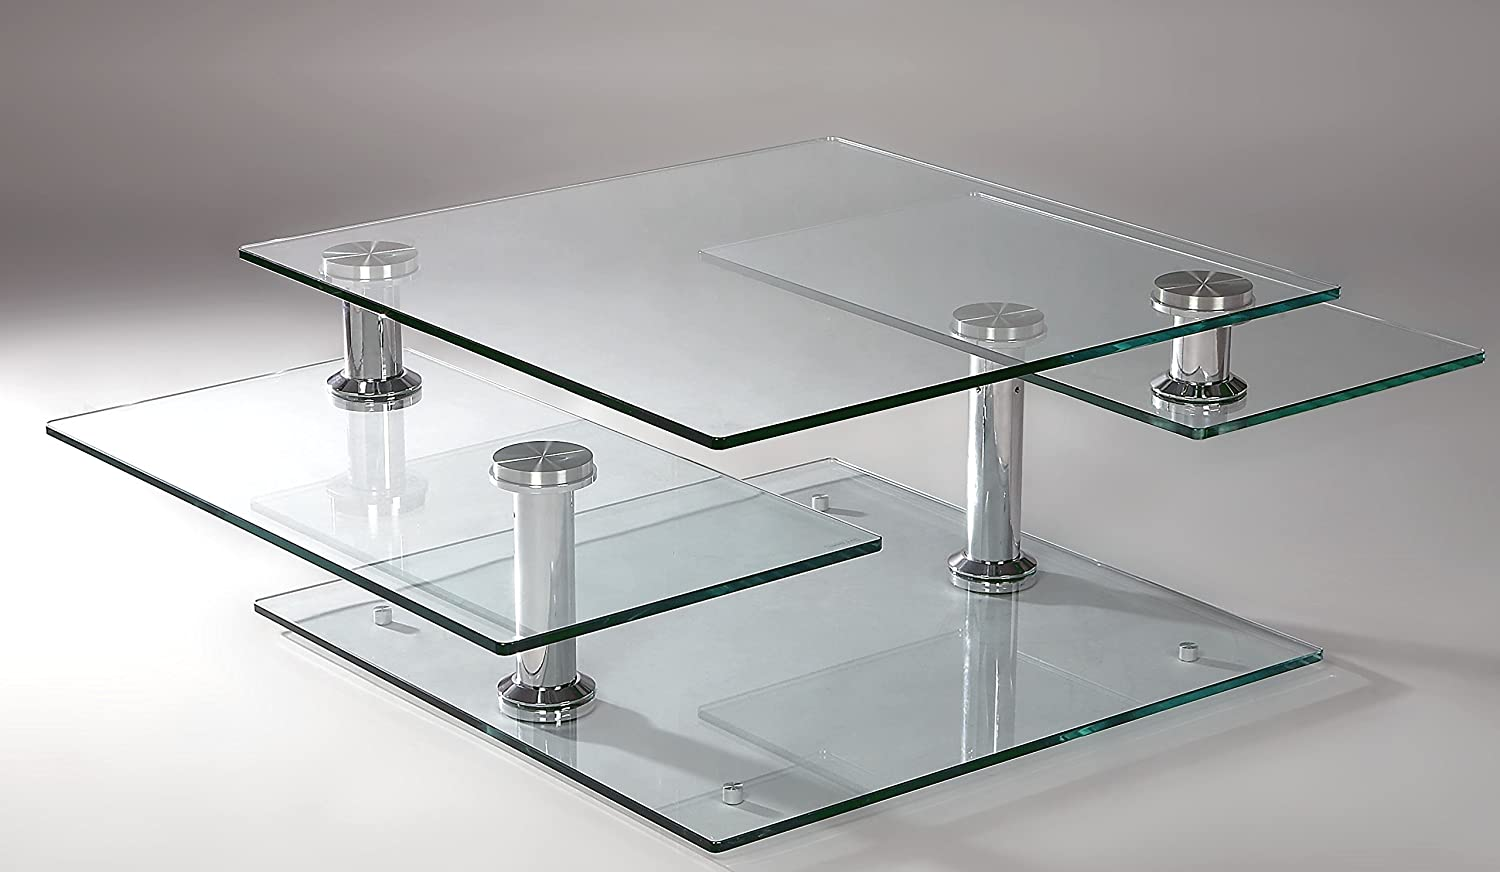 Amazon milan lillyana ct lillyana clearchrome square glass amazon milan lillyana ct lillyana clearchrome square glass motion cocktail table kitchen dining geotapseo Images